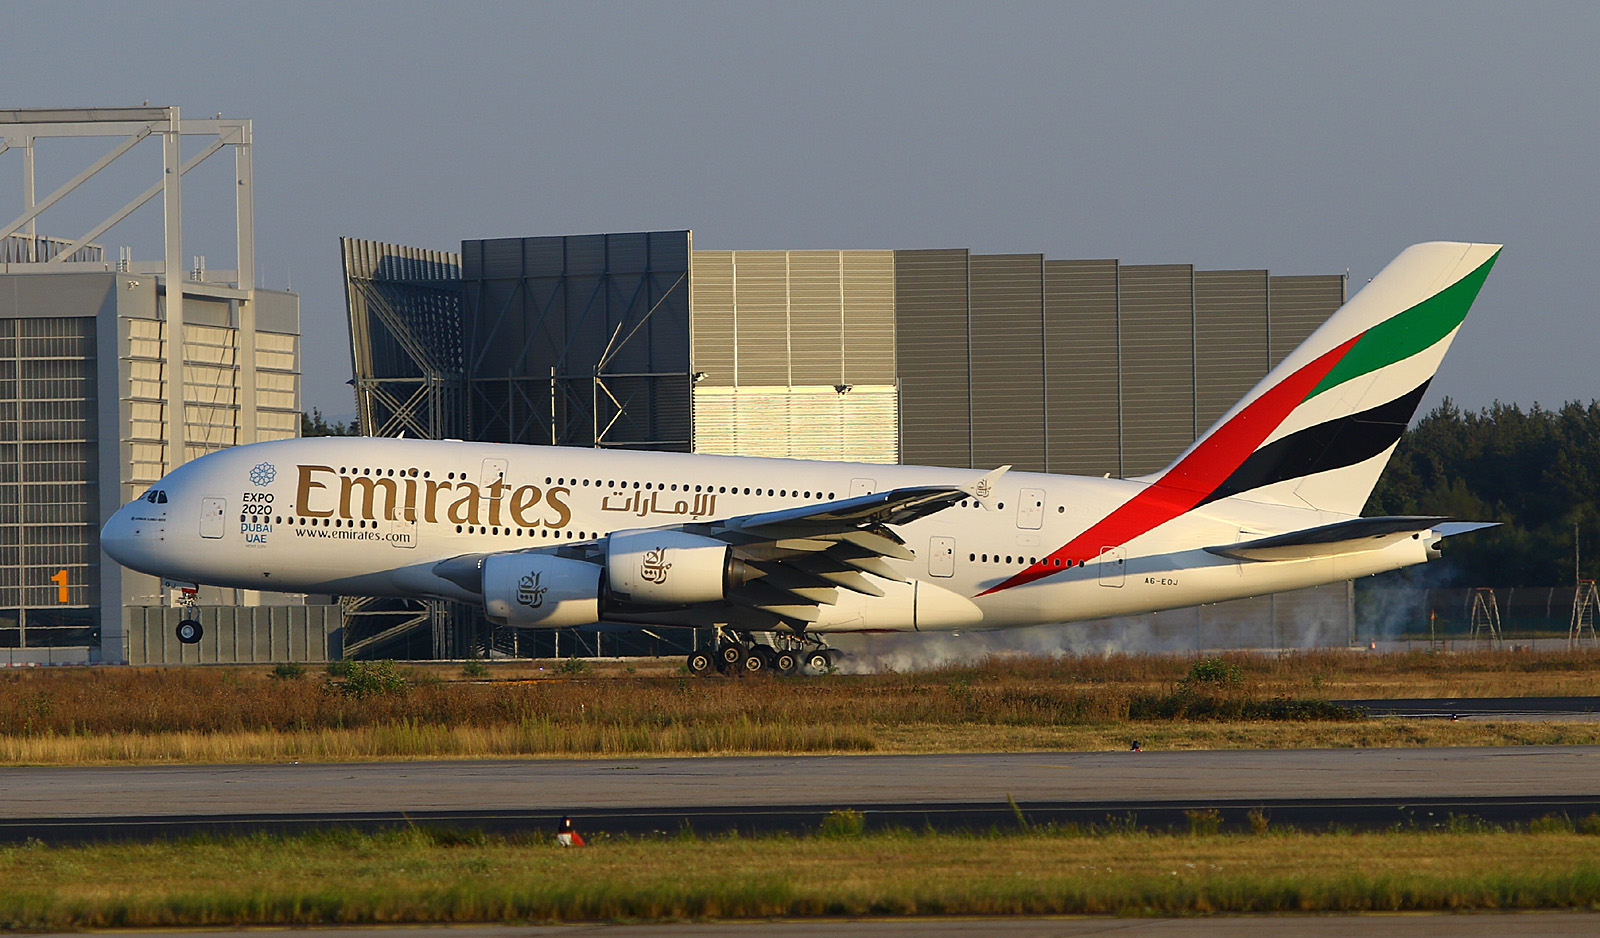 Emirates A380 at Frankfurt Airport